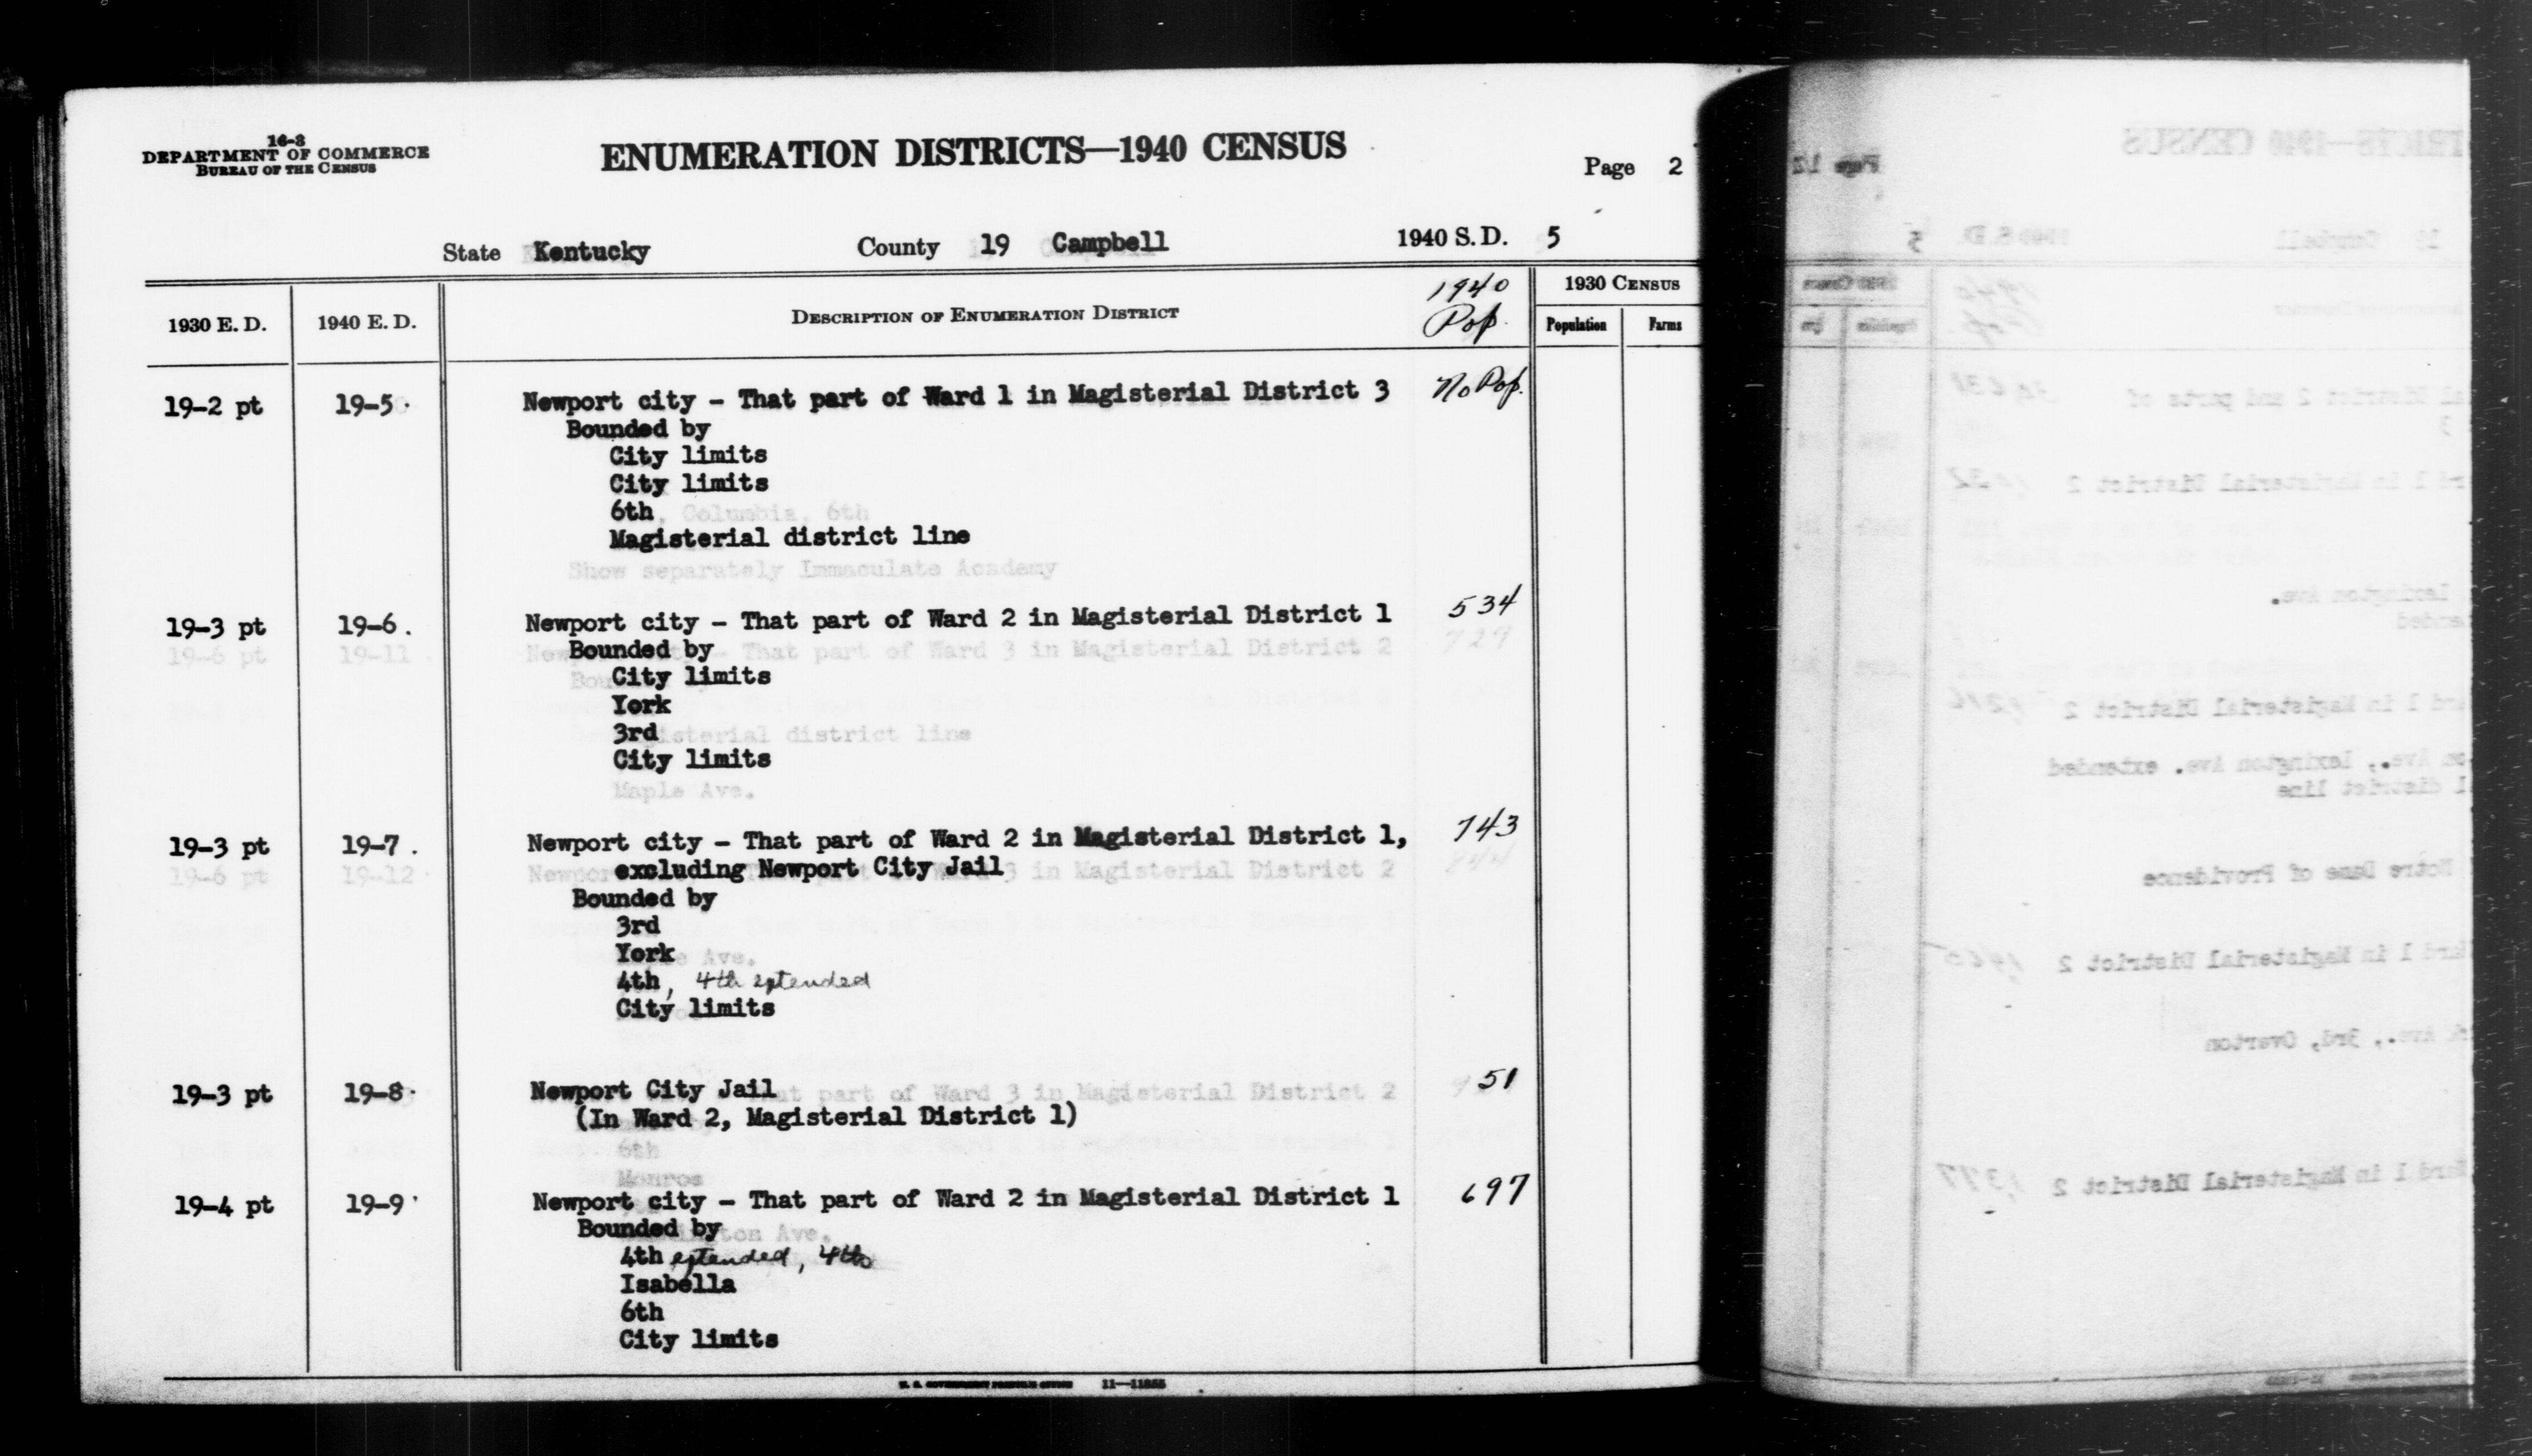 1940 Census Enumeration District Descriptions - Kentucky - Campbell County - ED 19-5, ED 19-6, ED 19-7, ED 19-8, ED 19-9